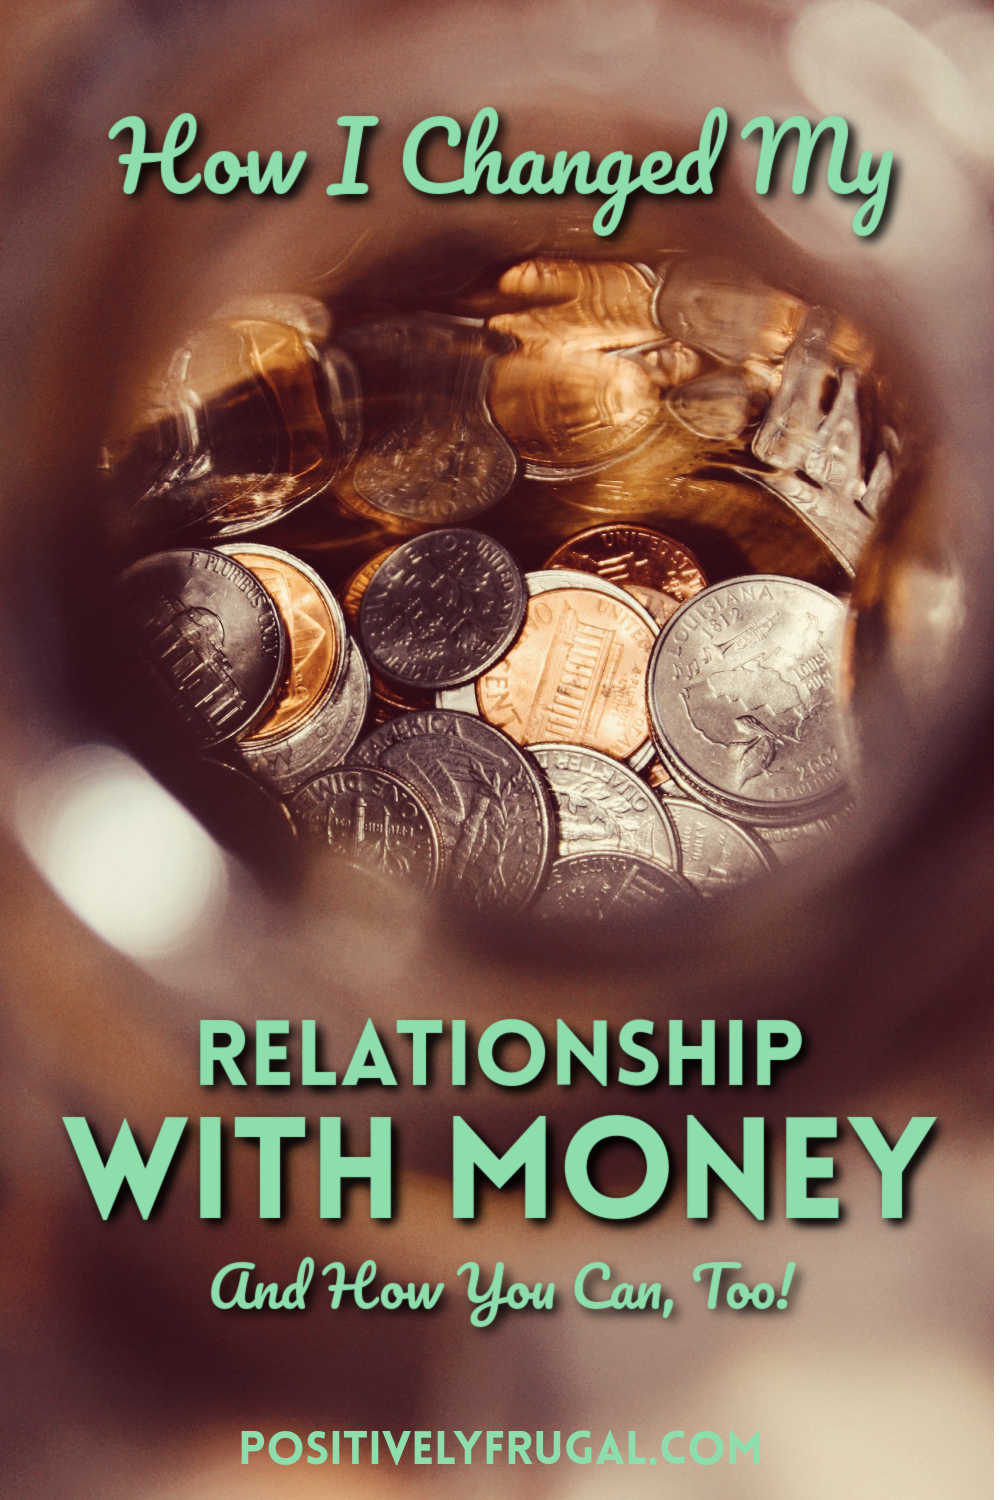 How I Changed My Relationship with Money and You Can Too by PositivelyFrugal.com